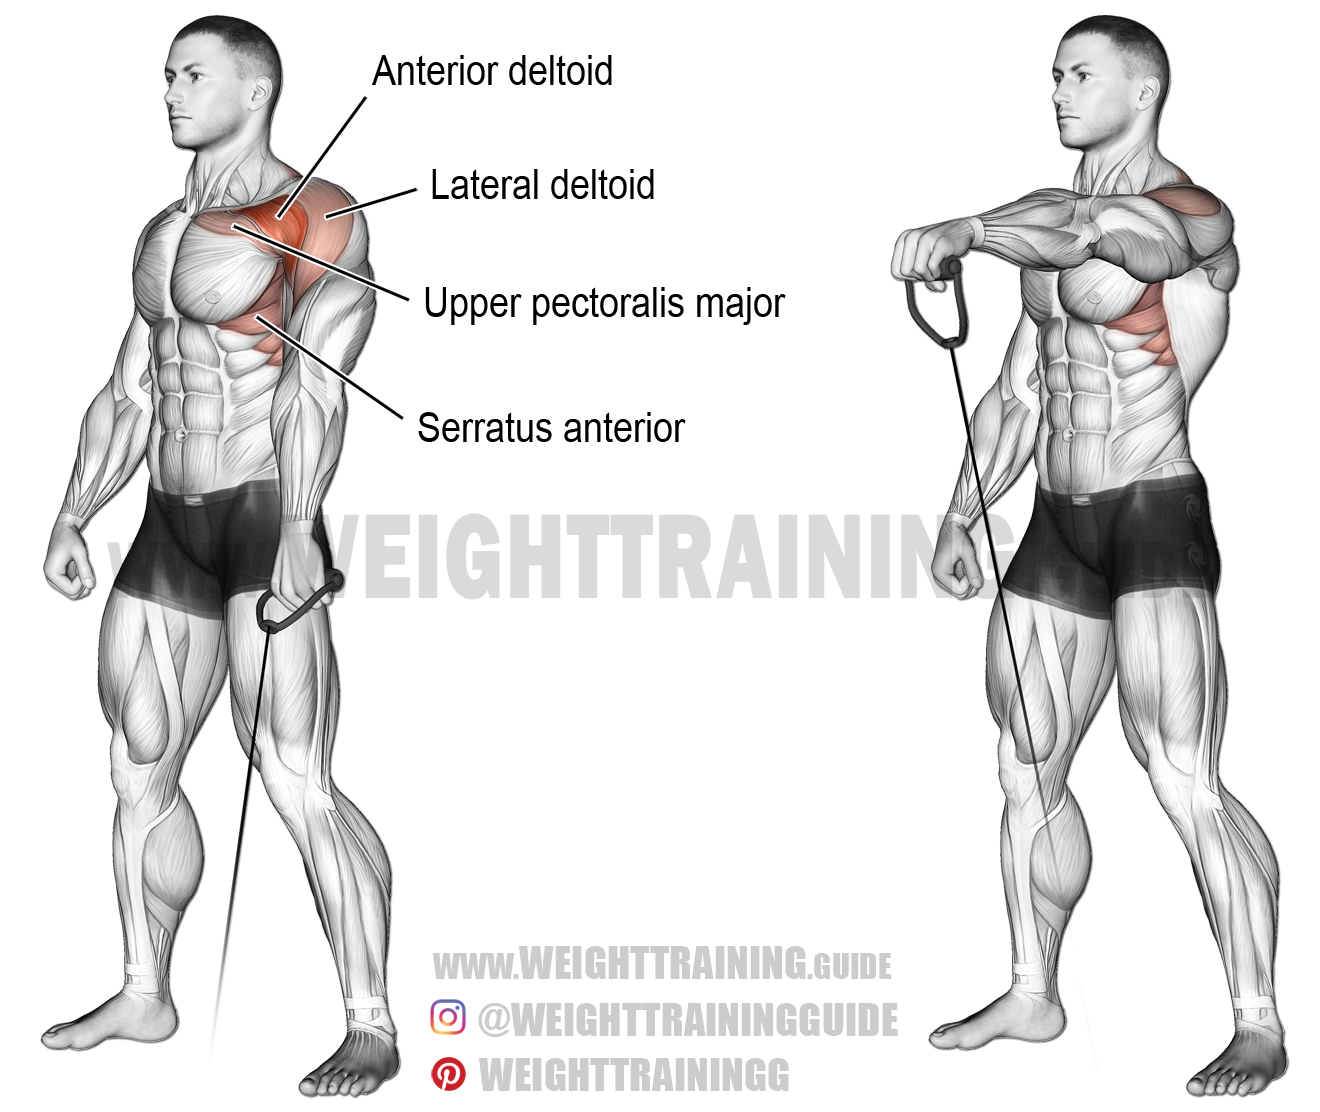 cable onearm front raise exercise instructions and video